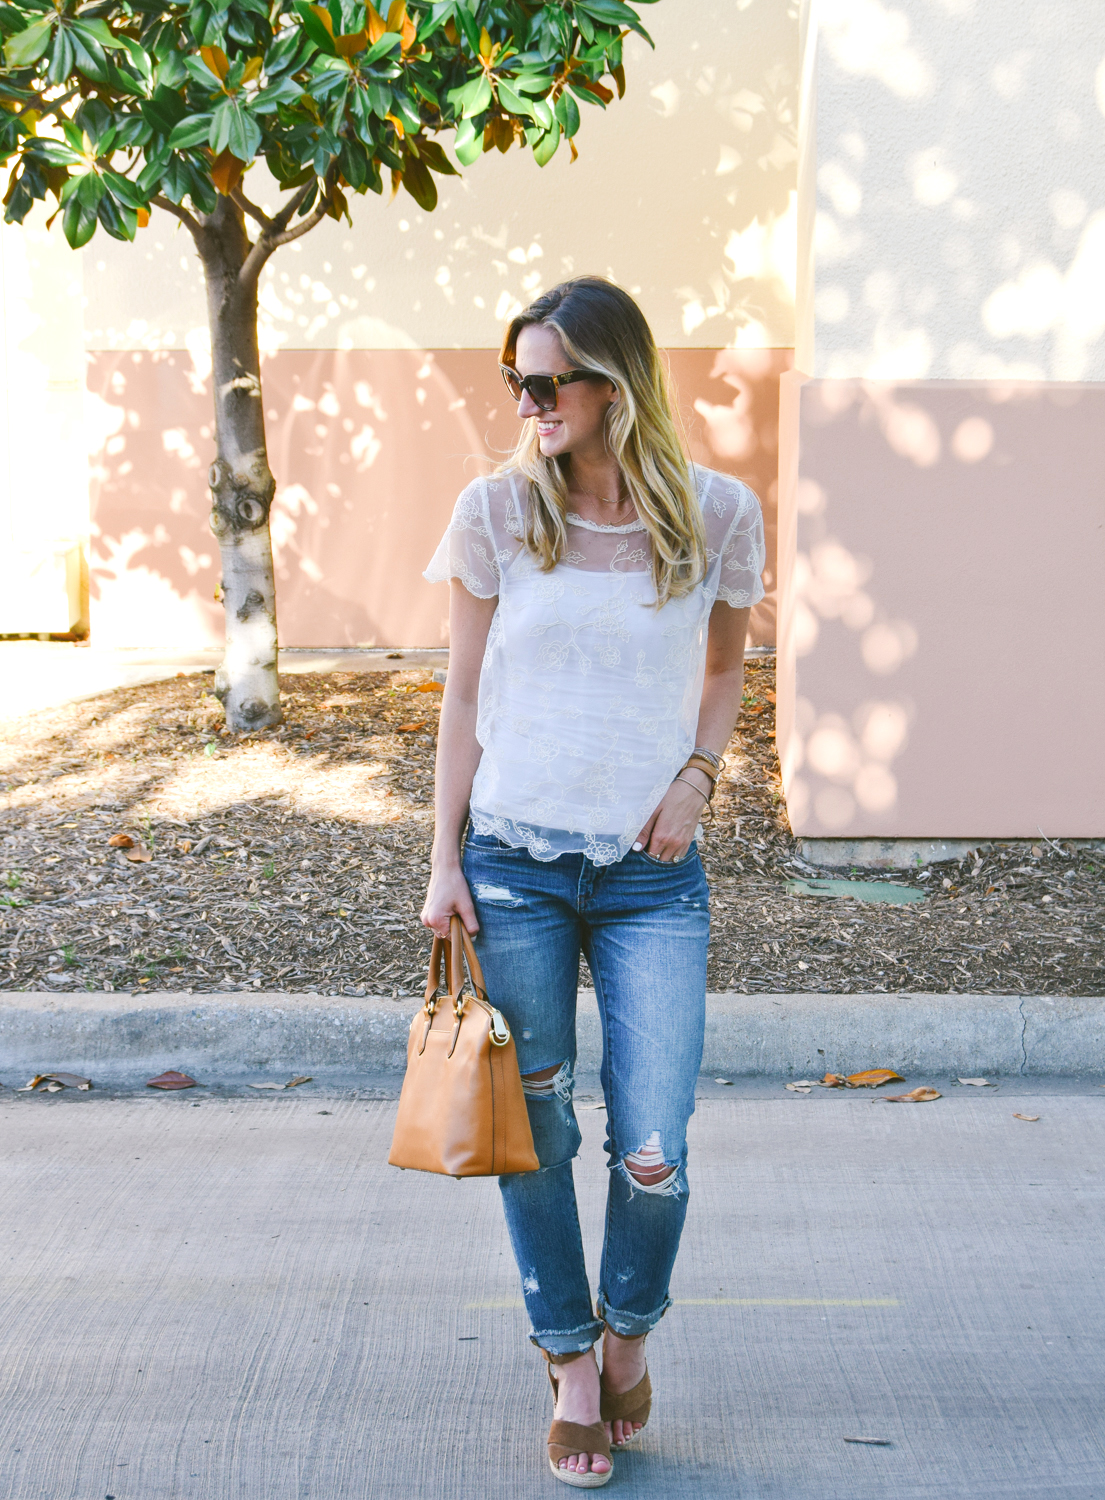 livvyland-blog-olivia-watson-austin-texas-fashion-blogger-hinge-mesh-lace-embroidered-top-sheer-distressed-boyfriend-jeans-brahmin-duxbury-southcoast-collection-2